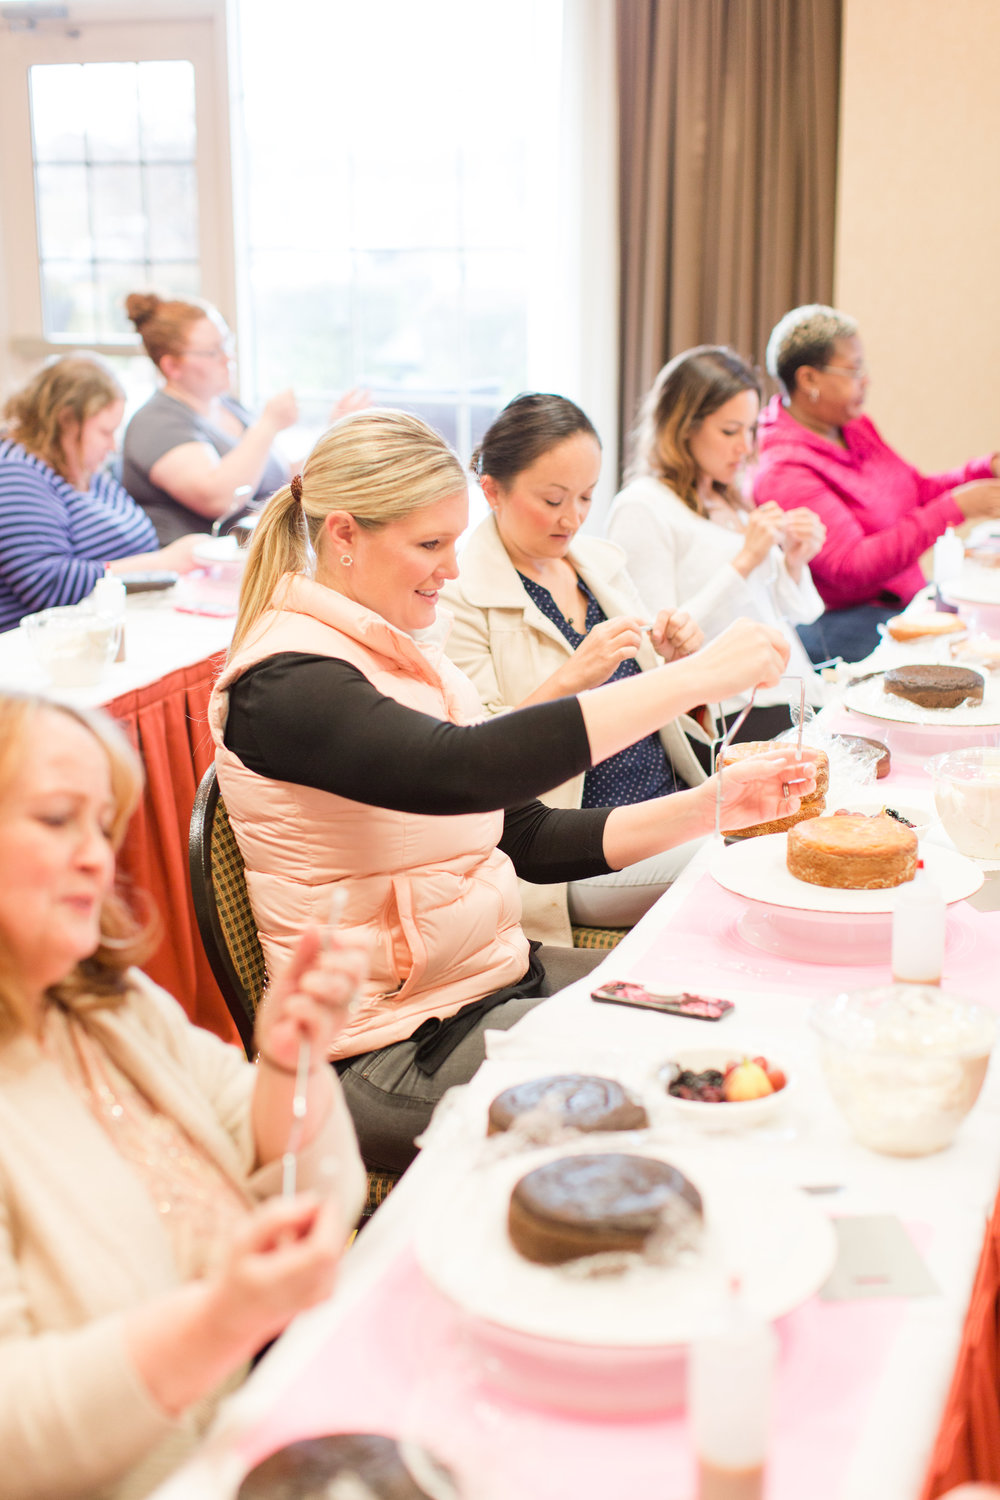 Sorby Sweets Cake Class Students